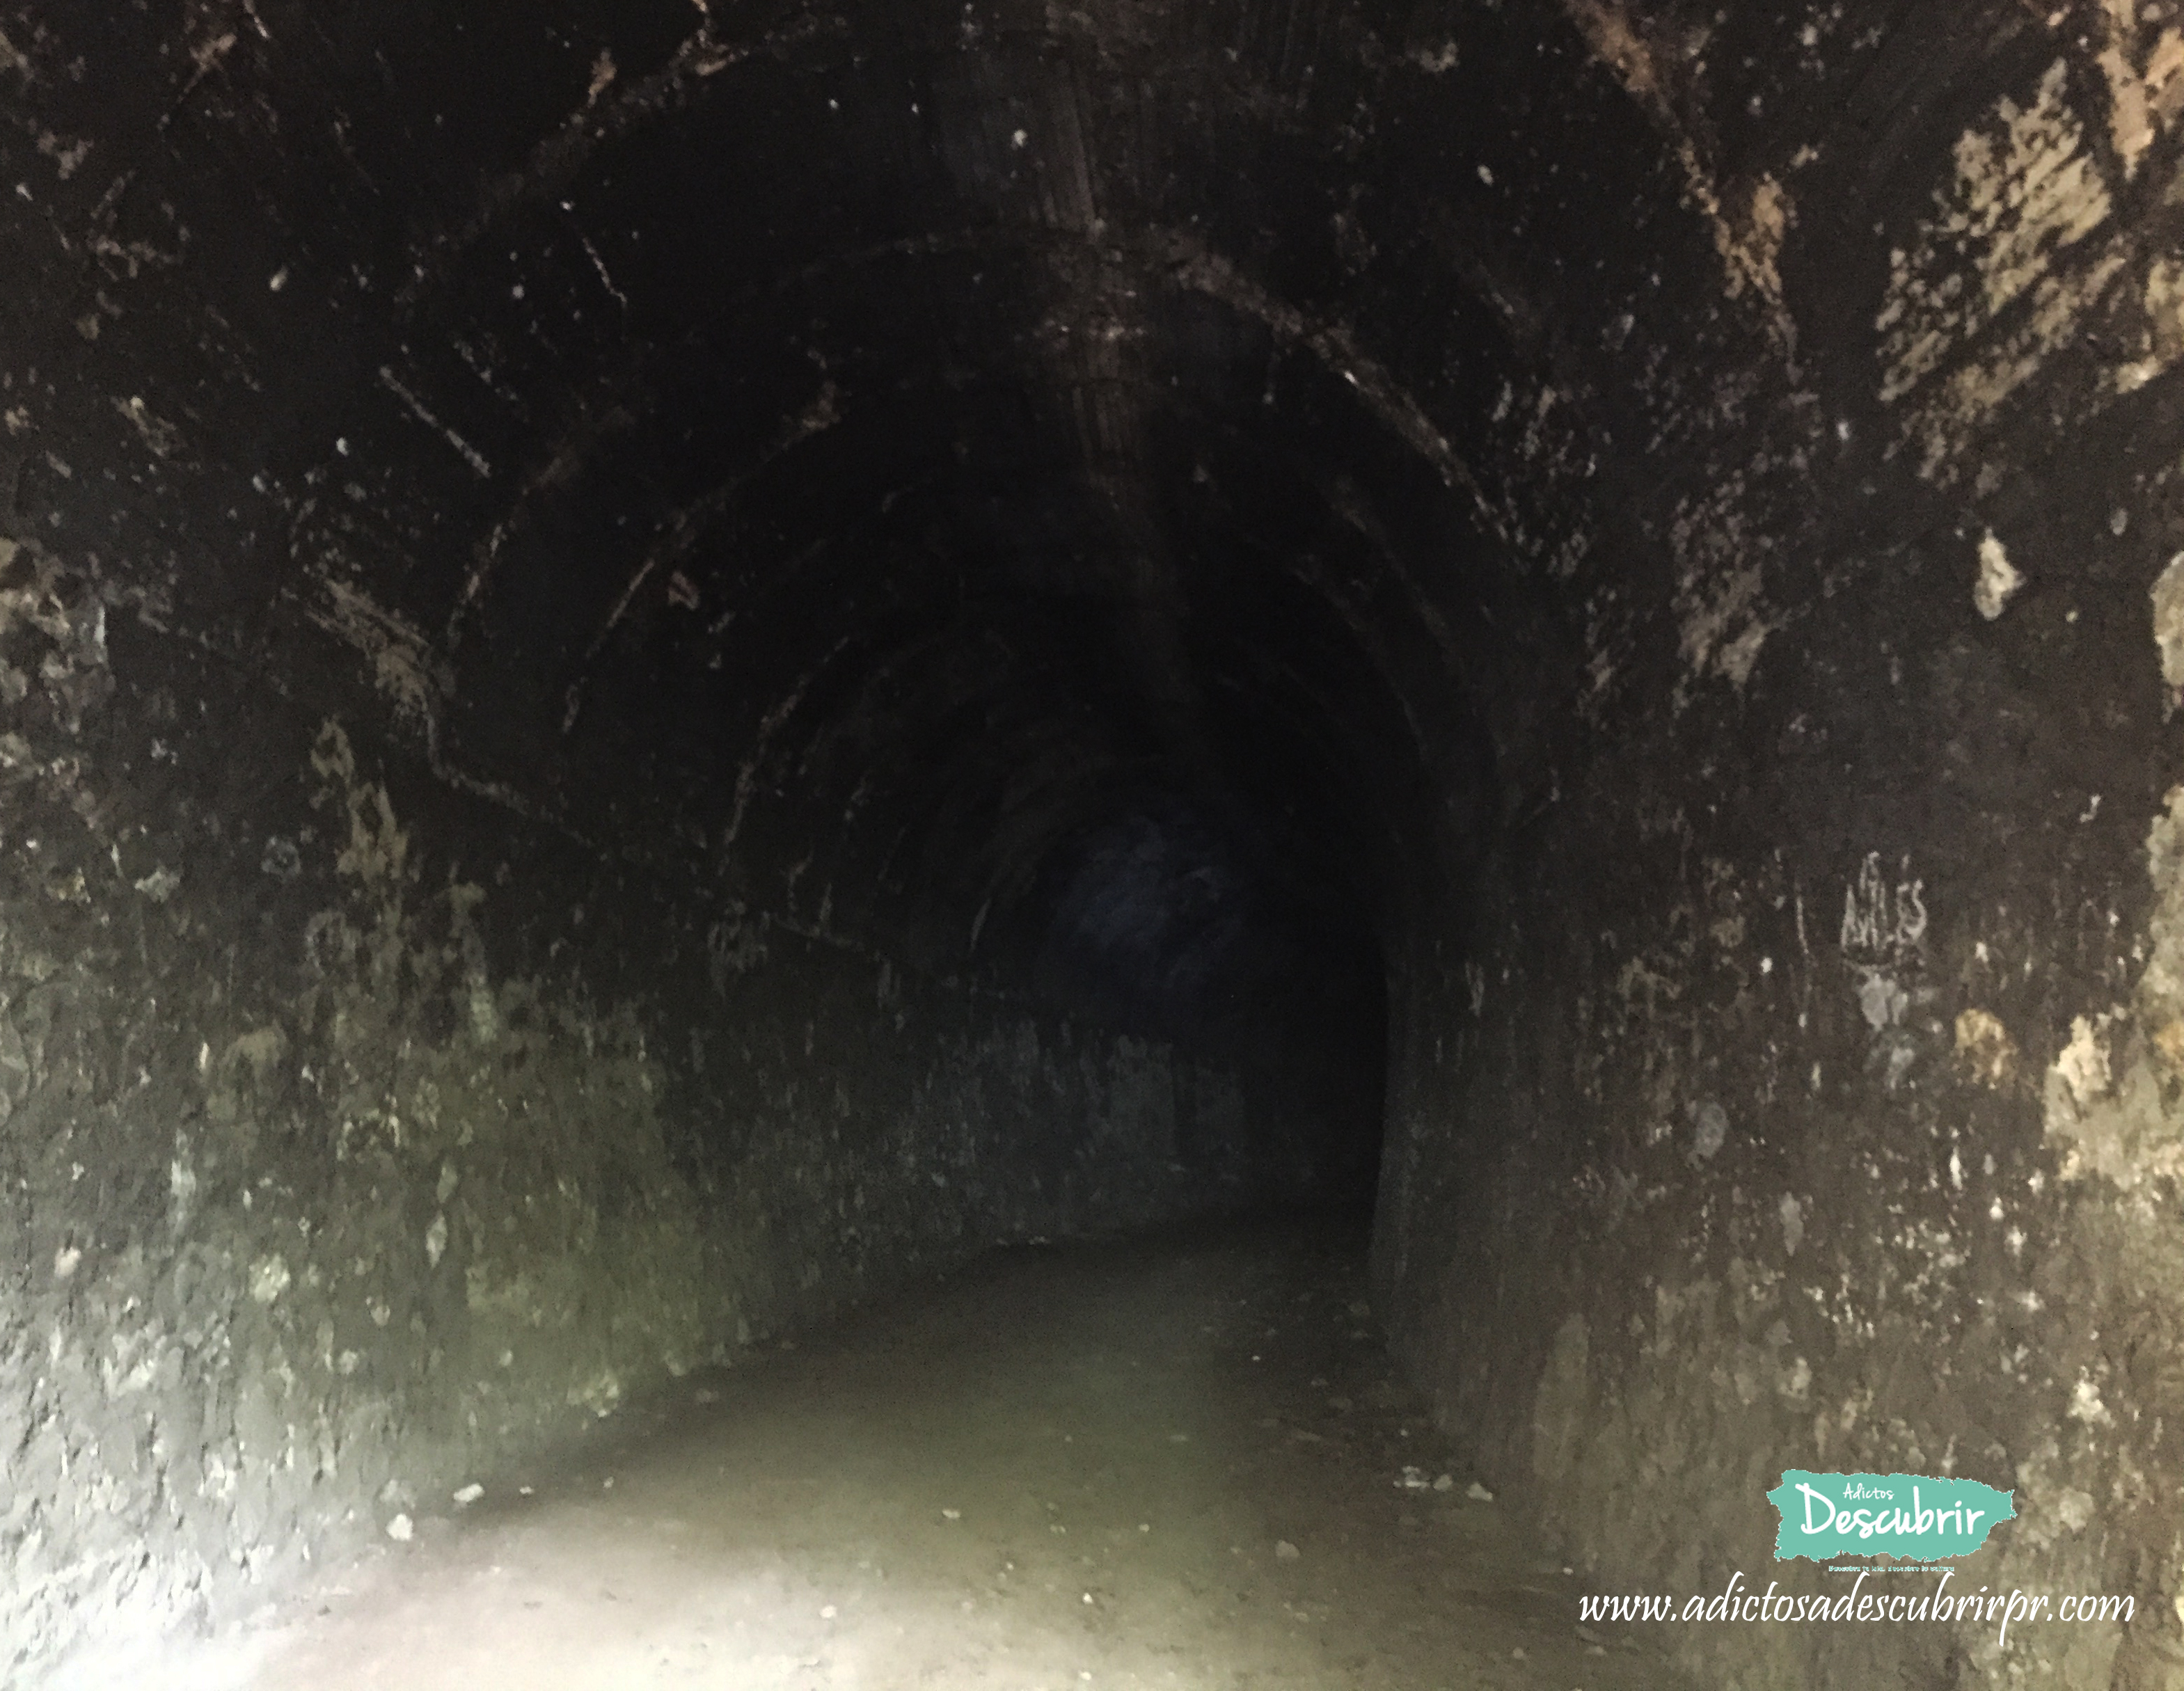 This is the curvature of the tunnel. Thanks to this curvature, the tunnel is dark and for this reason it is called The Black Tunnel.